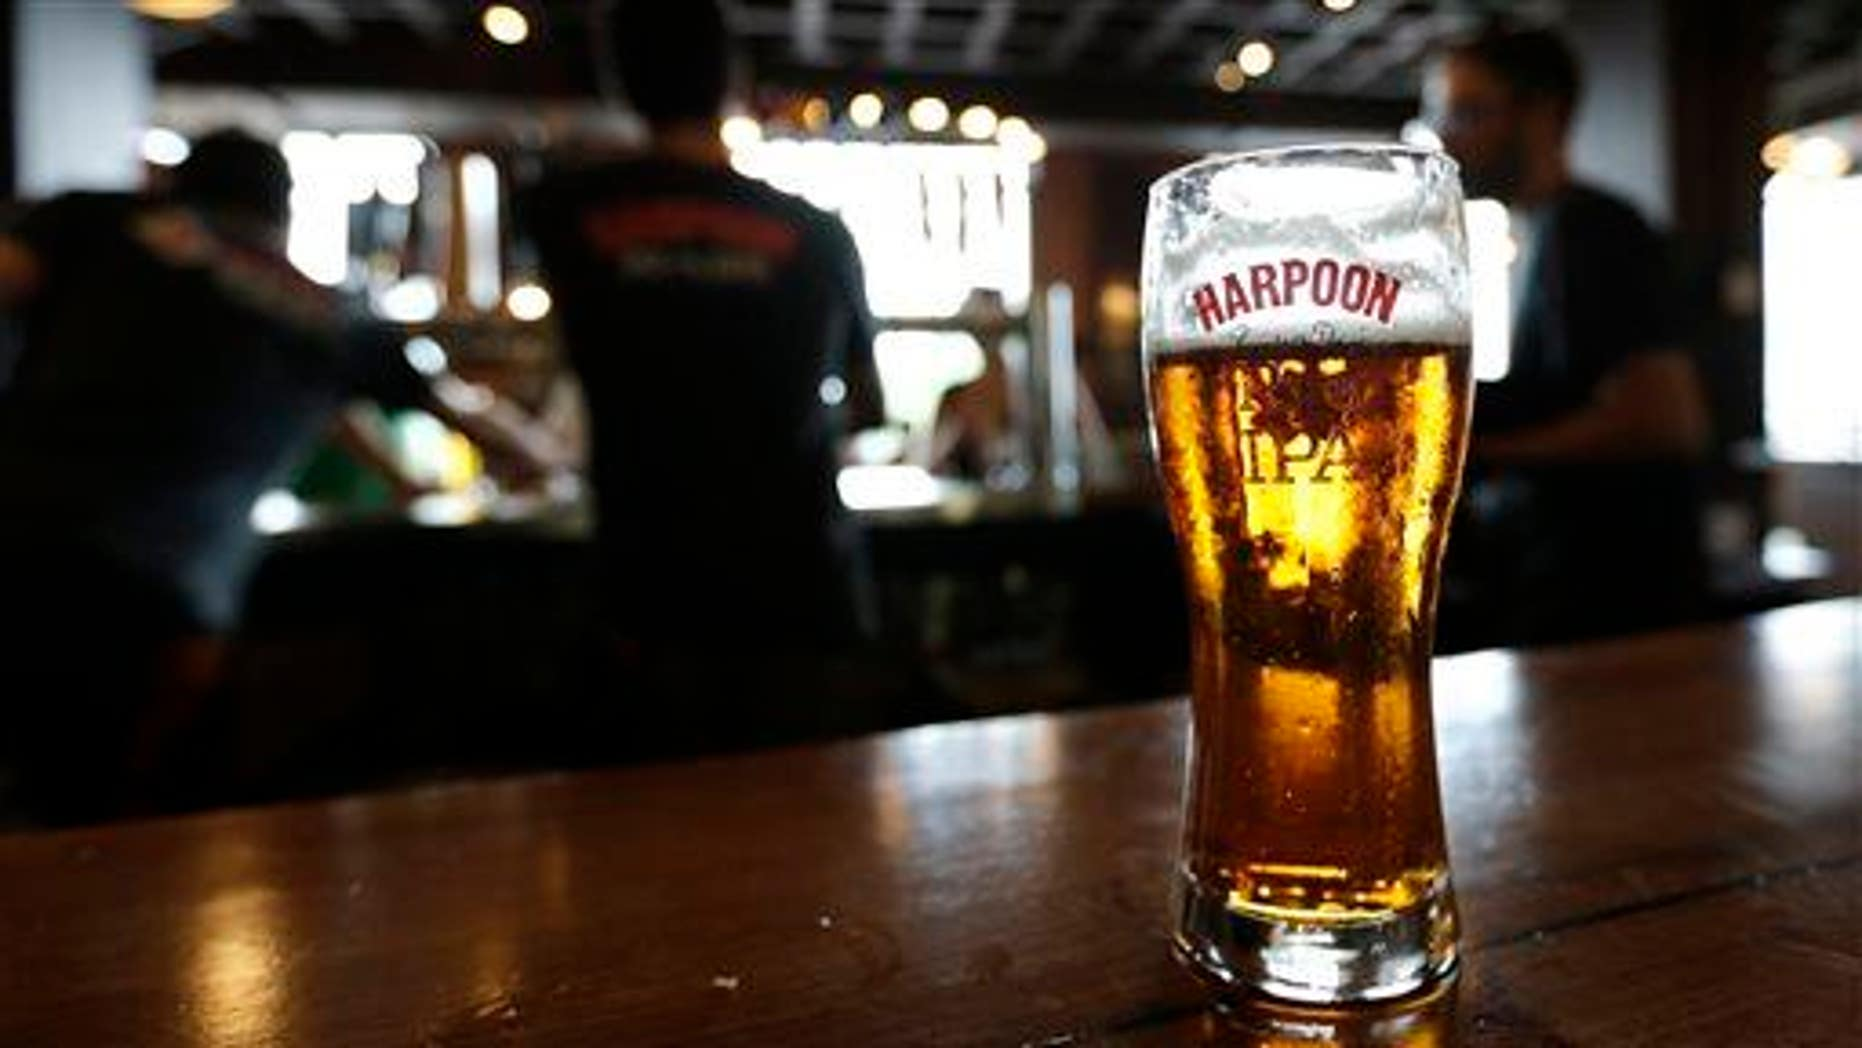 In this July 1, 2013 photo a glass of Rich and Dan's Rye IPA rests on the counter as bartenders pour drafts for patrons in the Beer Hall at the Harpoon Brewery in the Seaport District of Boston.